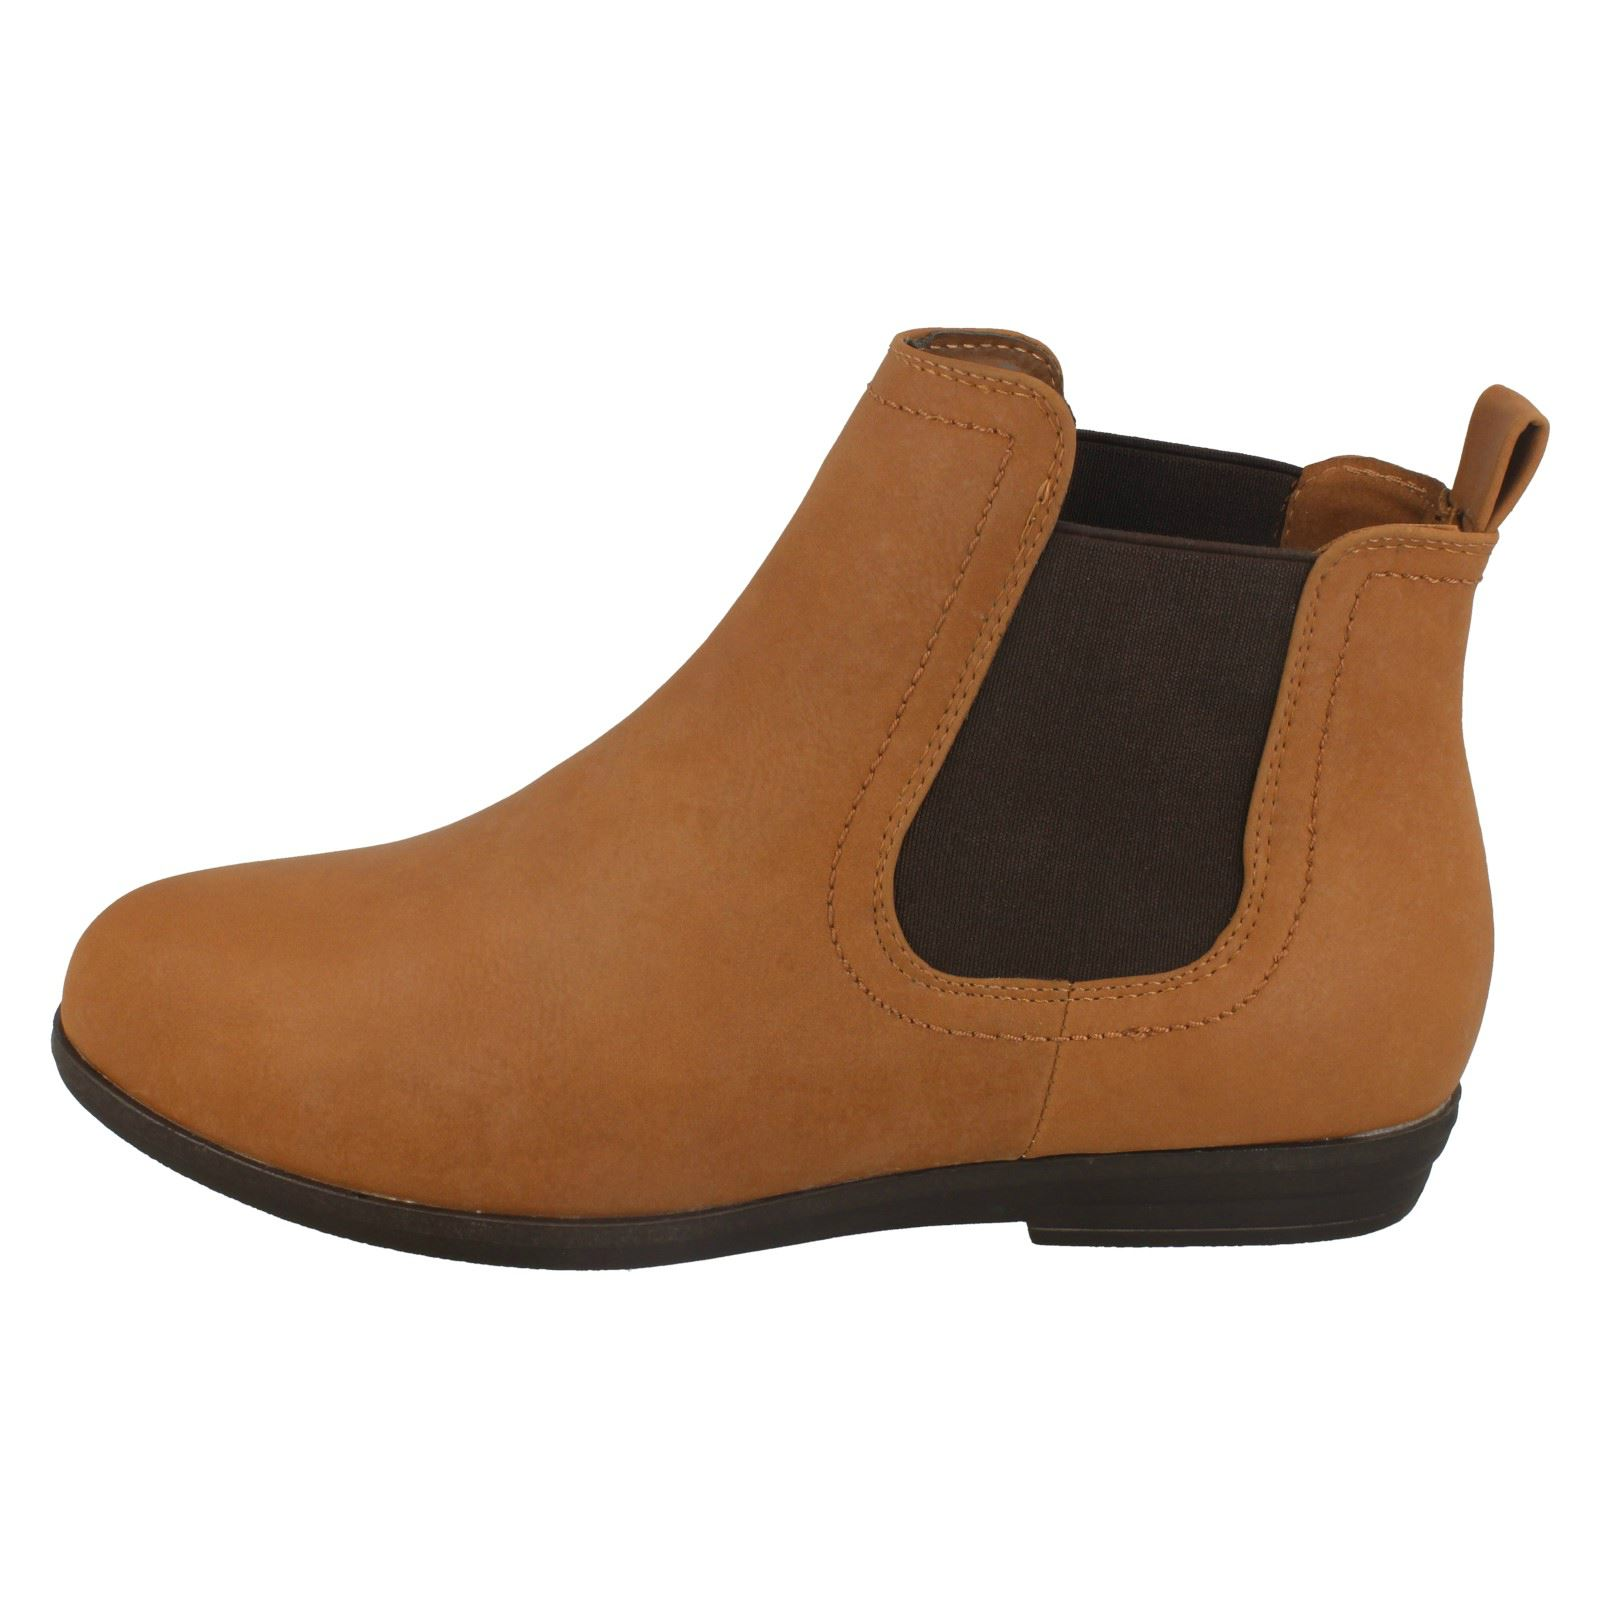 Spot On Low Heel Chelsea Style Ladies Ankle Boots